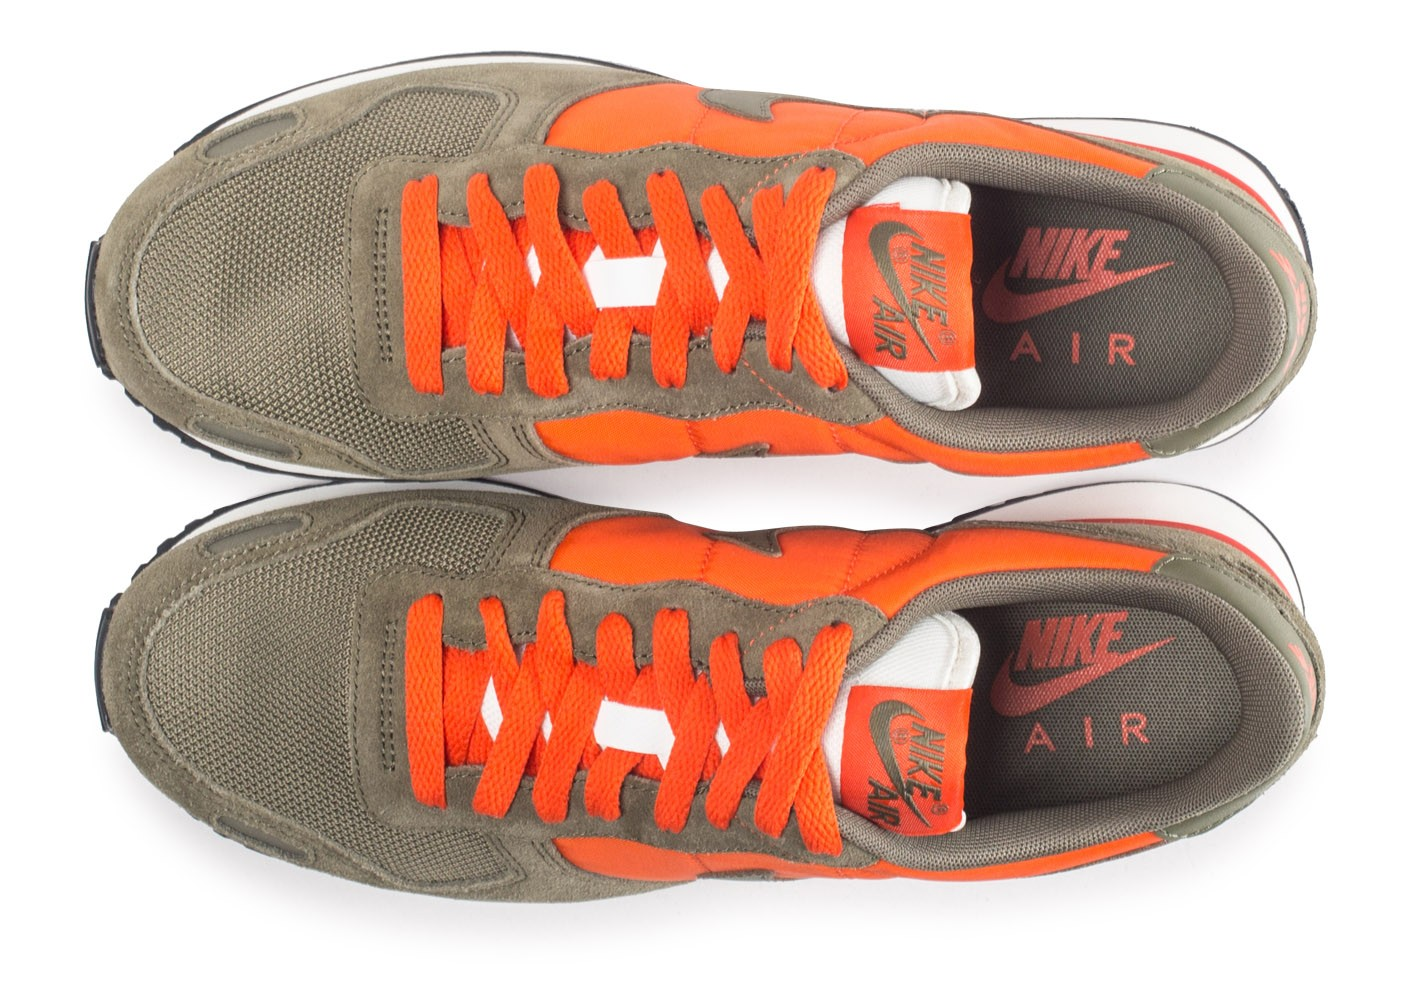 sports shoes 89893 9358c Nike Air Vortex orange et kaki - Chaussures Baskets homme - Chausport